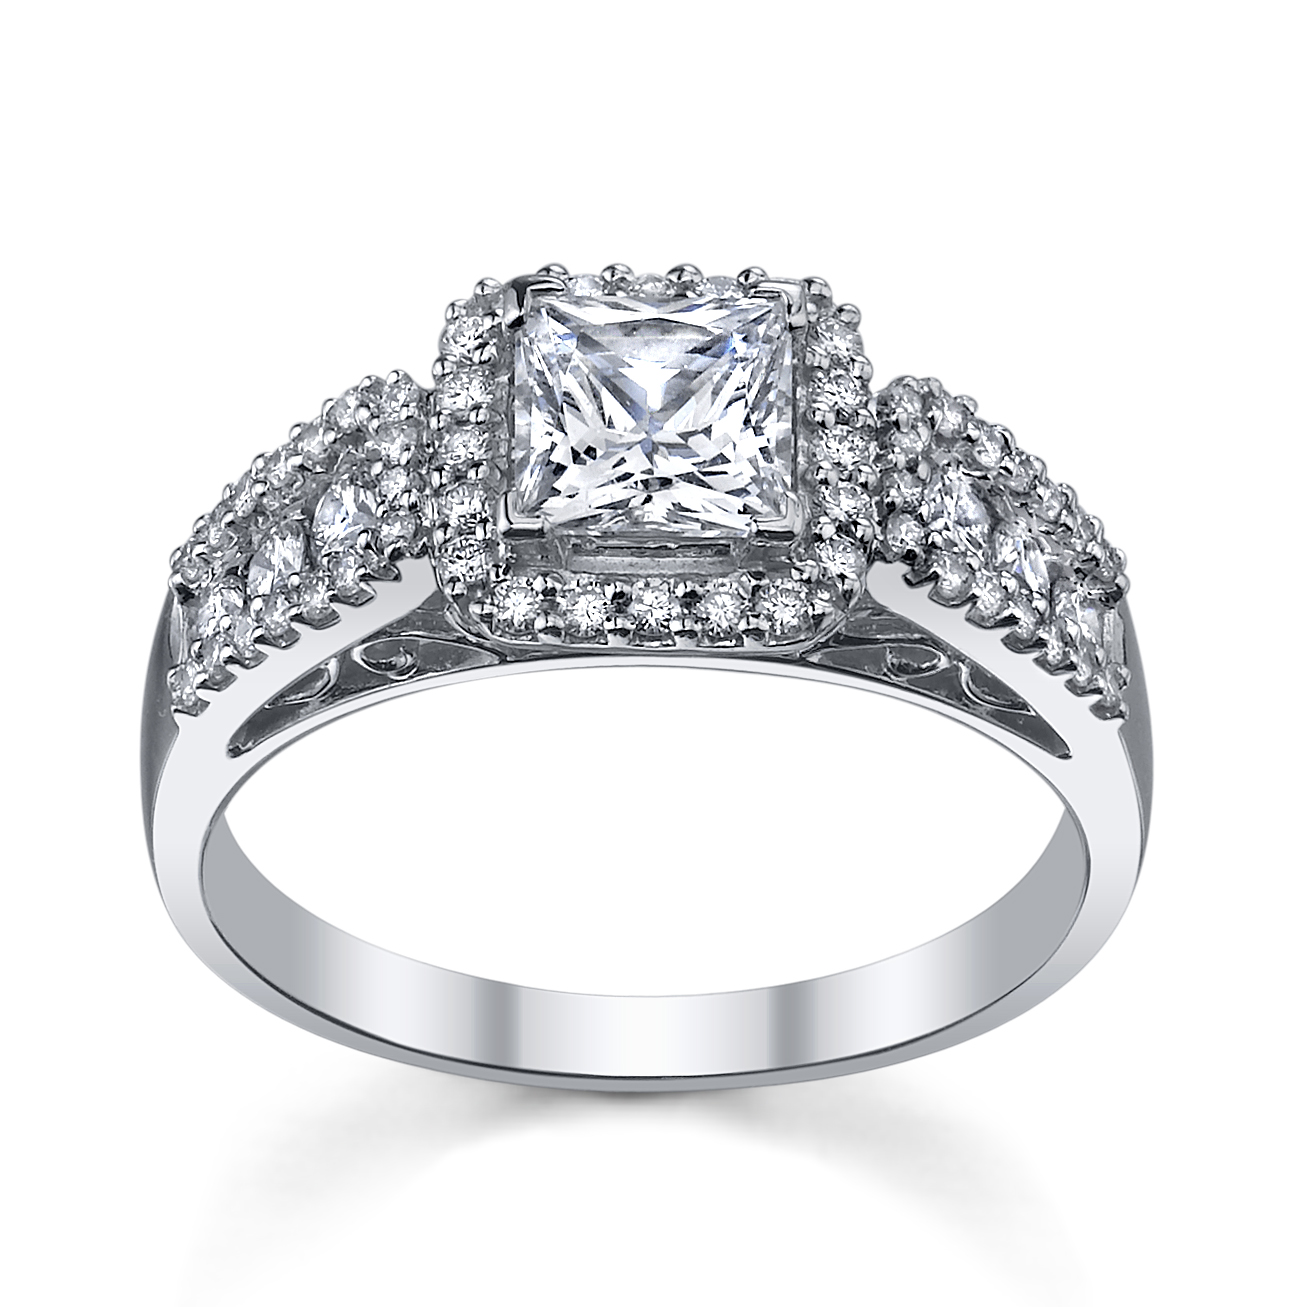 6 Princess Cut Engagement Rings She'll Love